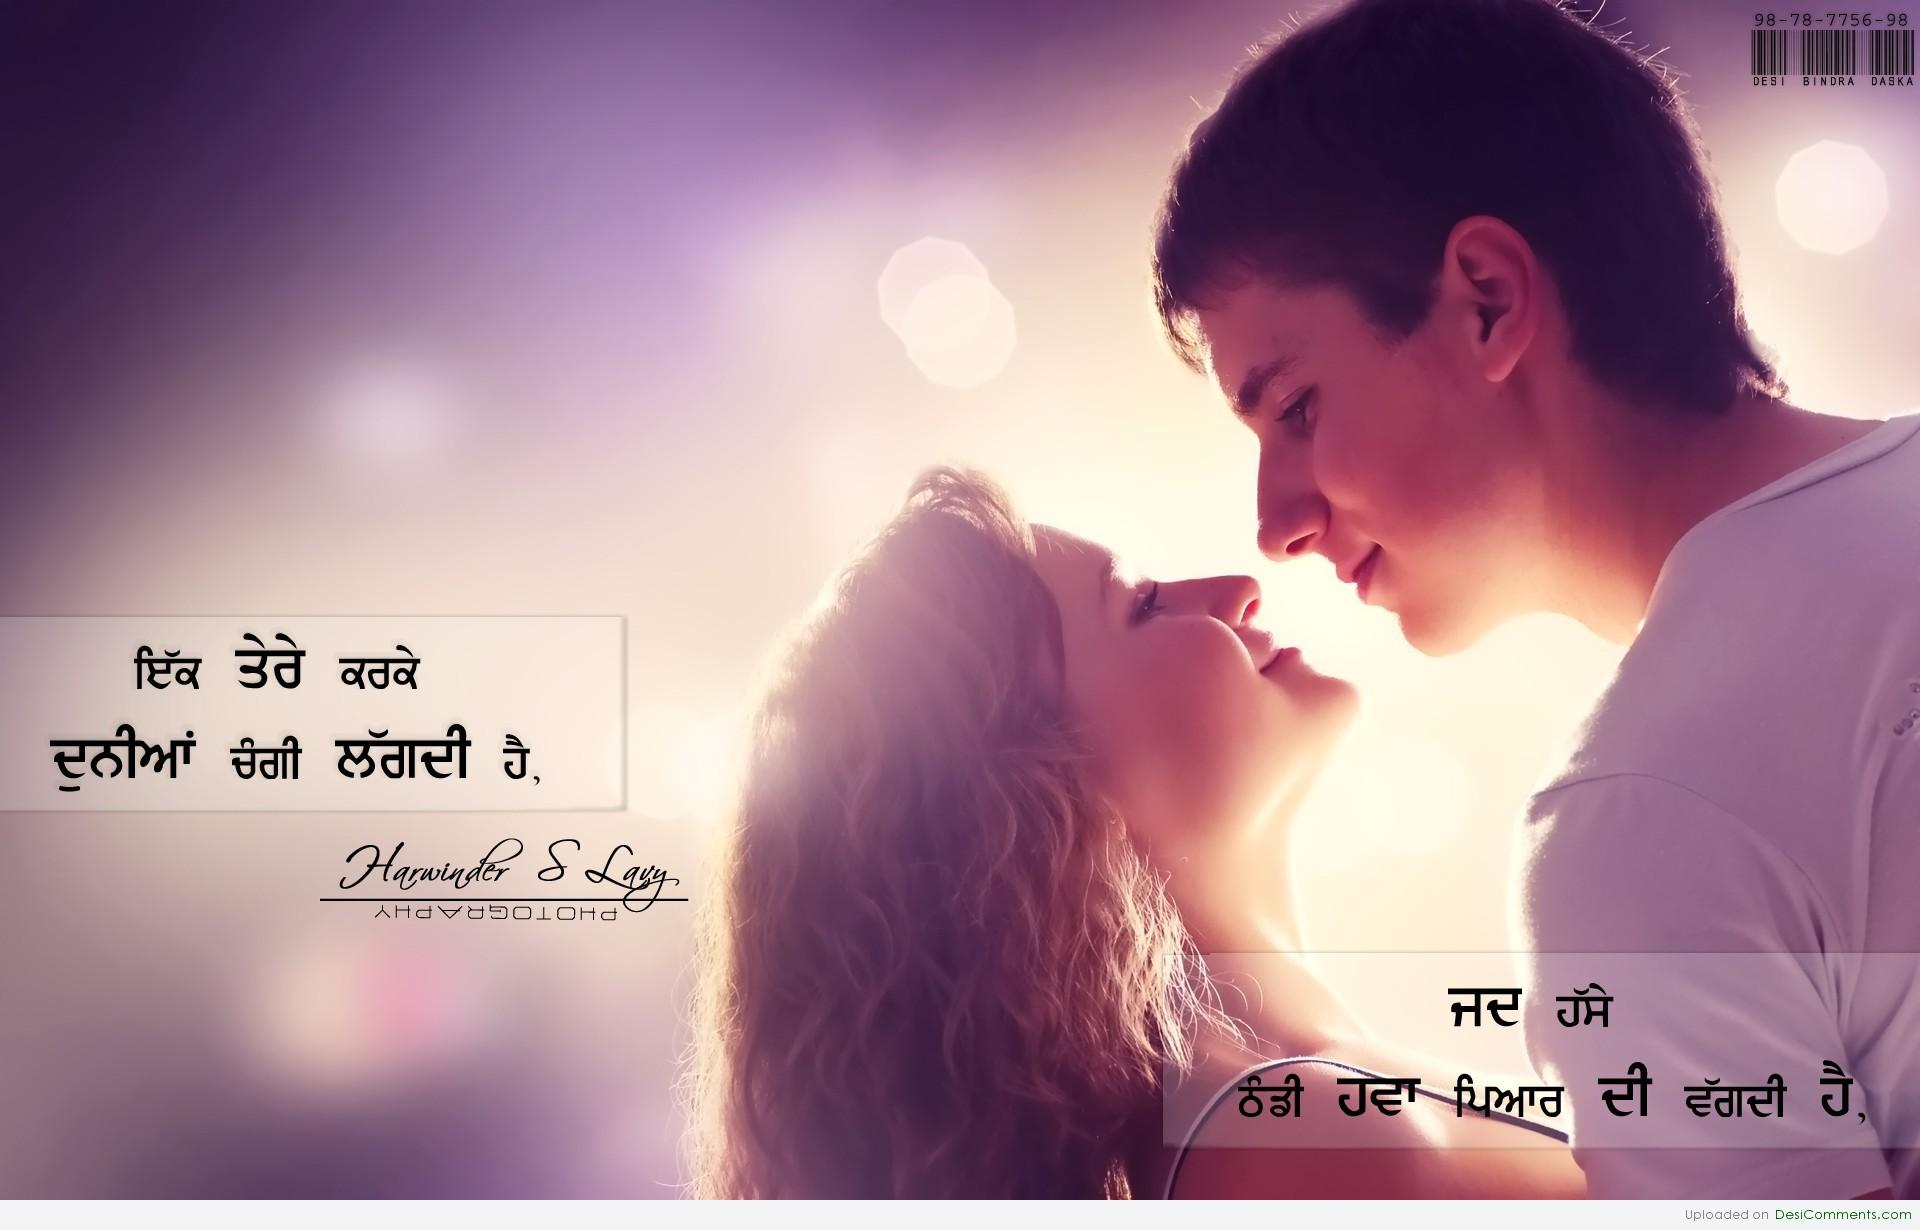 Cute Love Quotes For Her In Punjabi : Punjabi Love - DesiComments.com